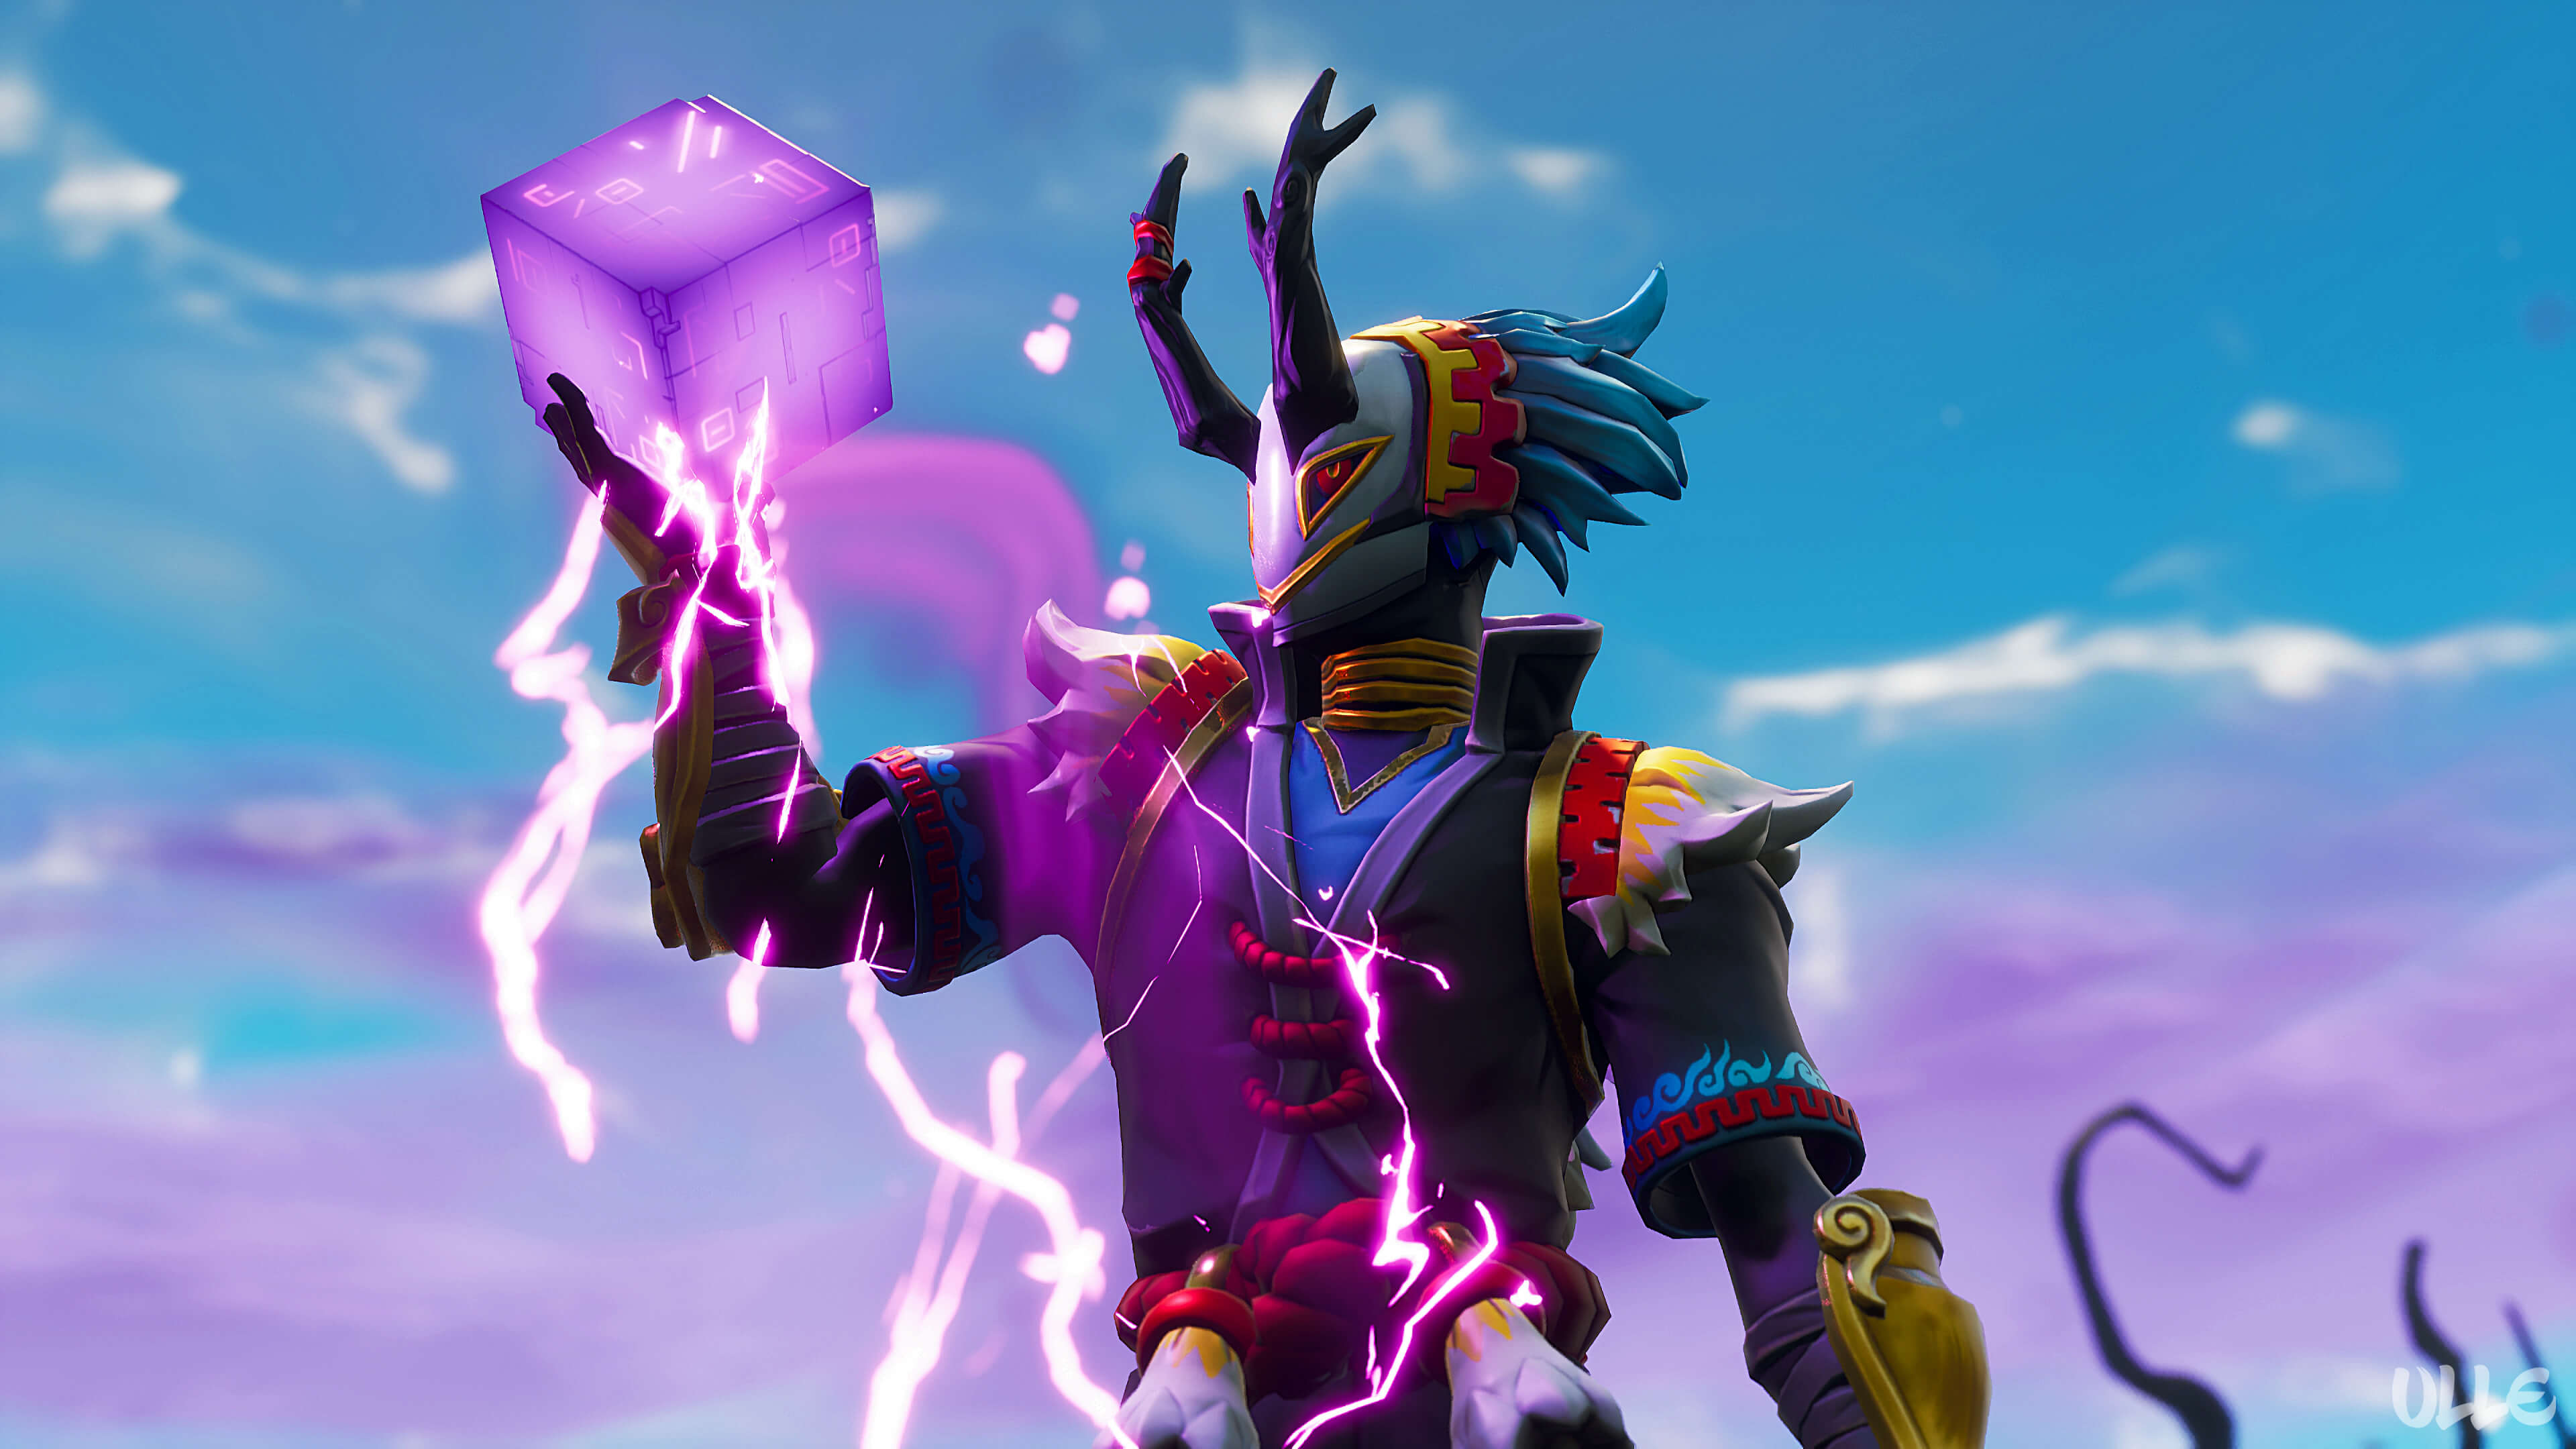 if you like to download this wallpaper please use this - fortnite taro and nara